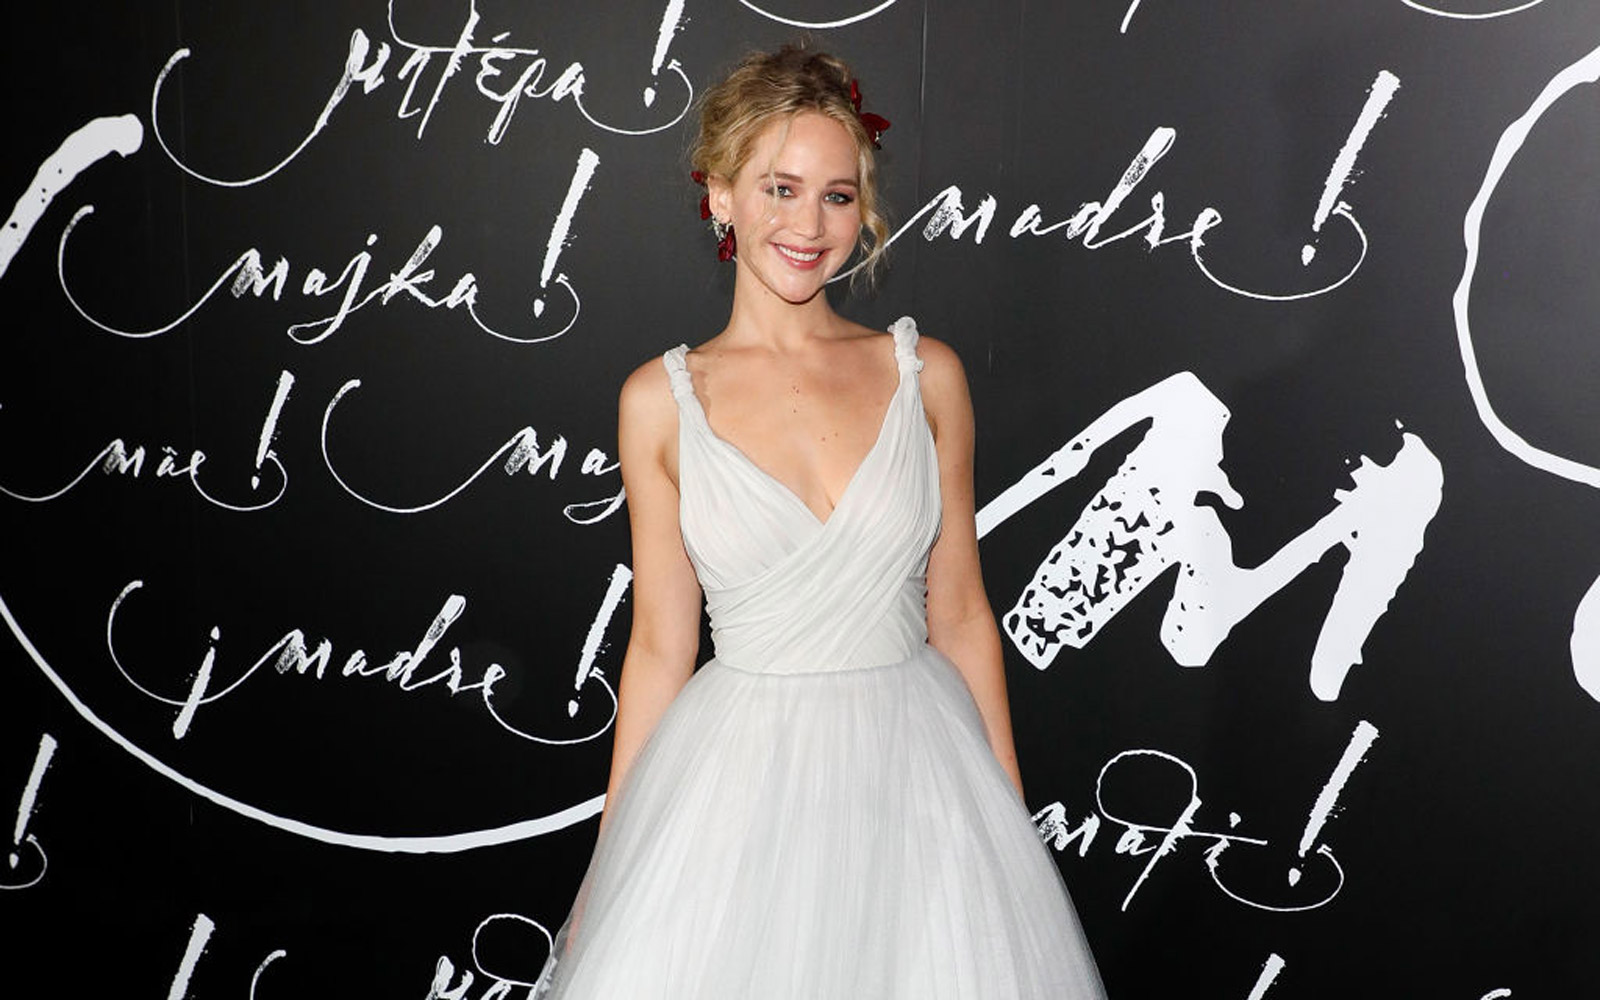 Jennifer Lawrence at the New York premiere of mother!